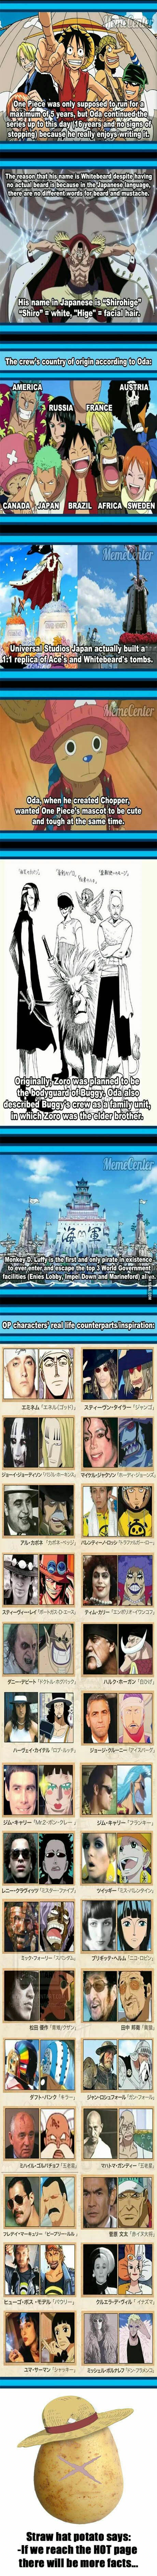 OnePiece facts!